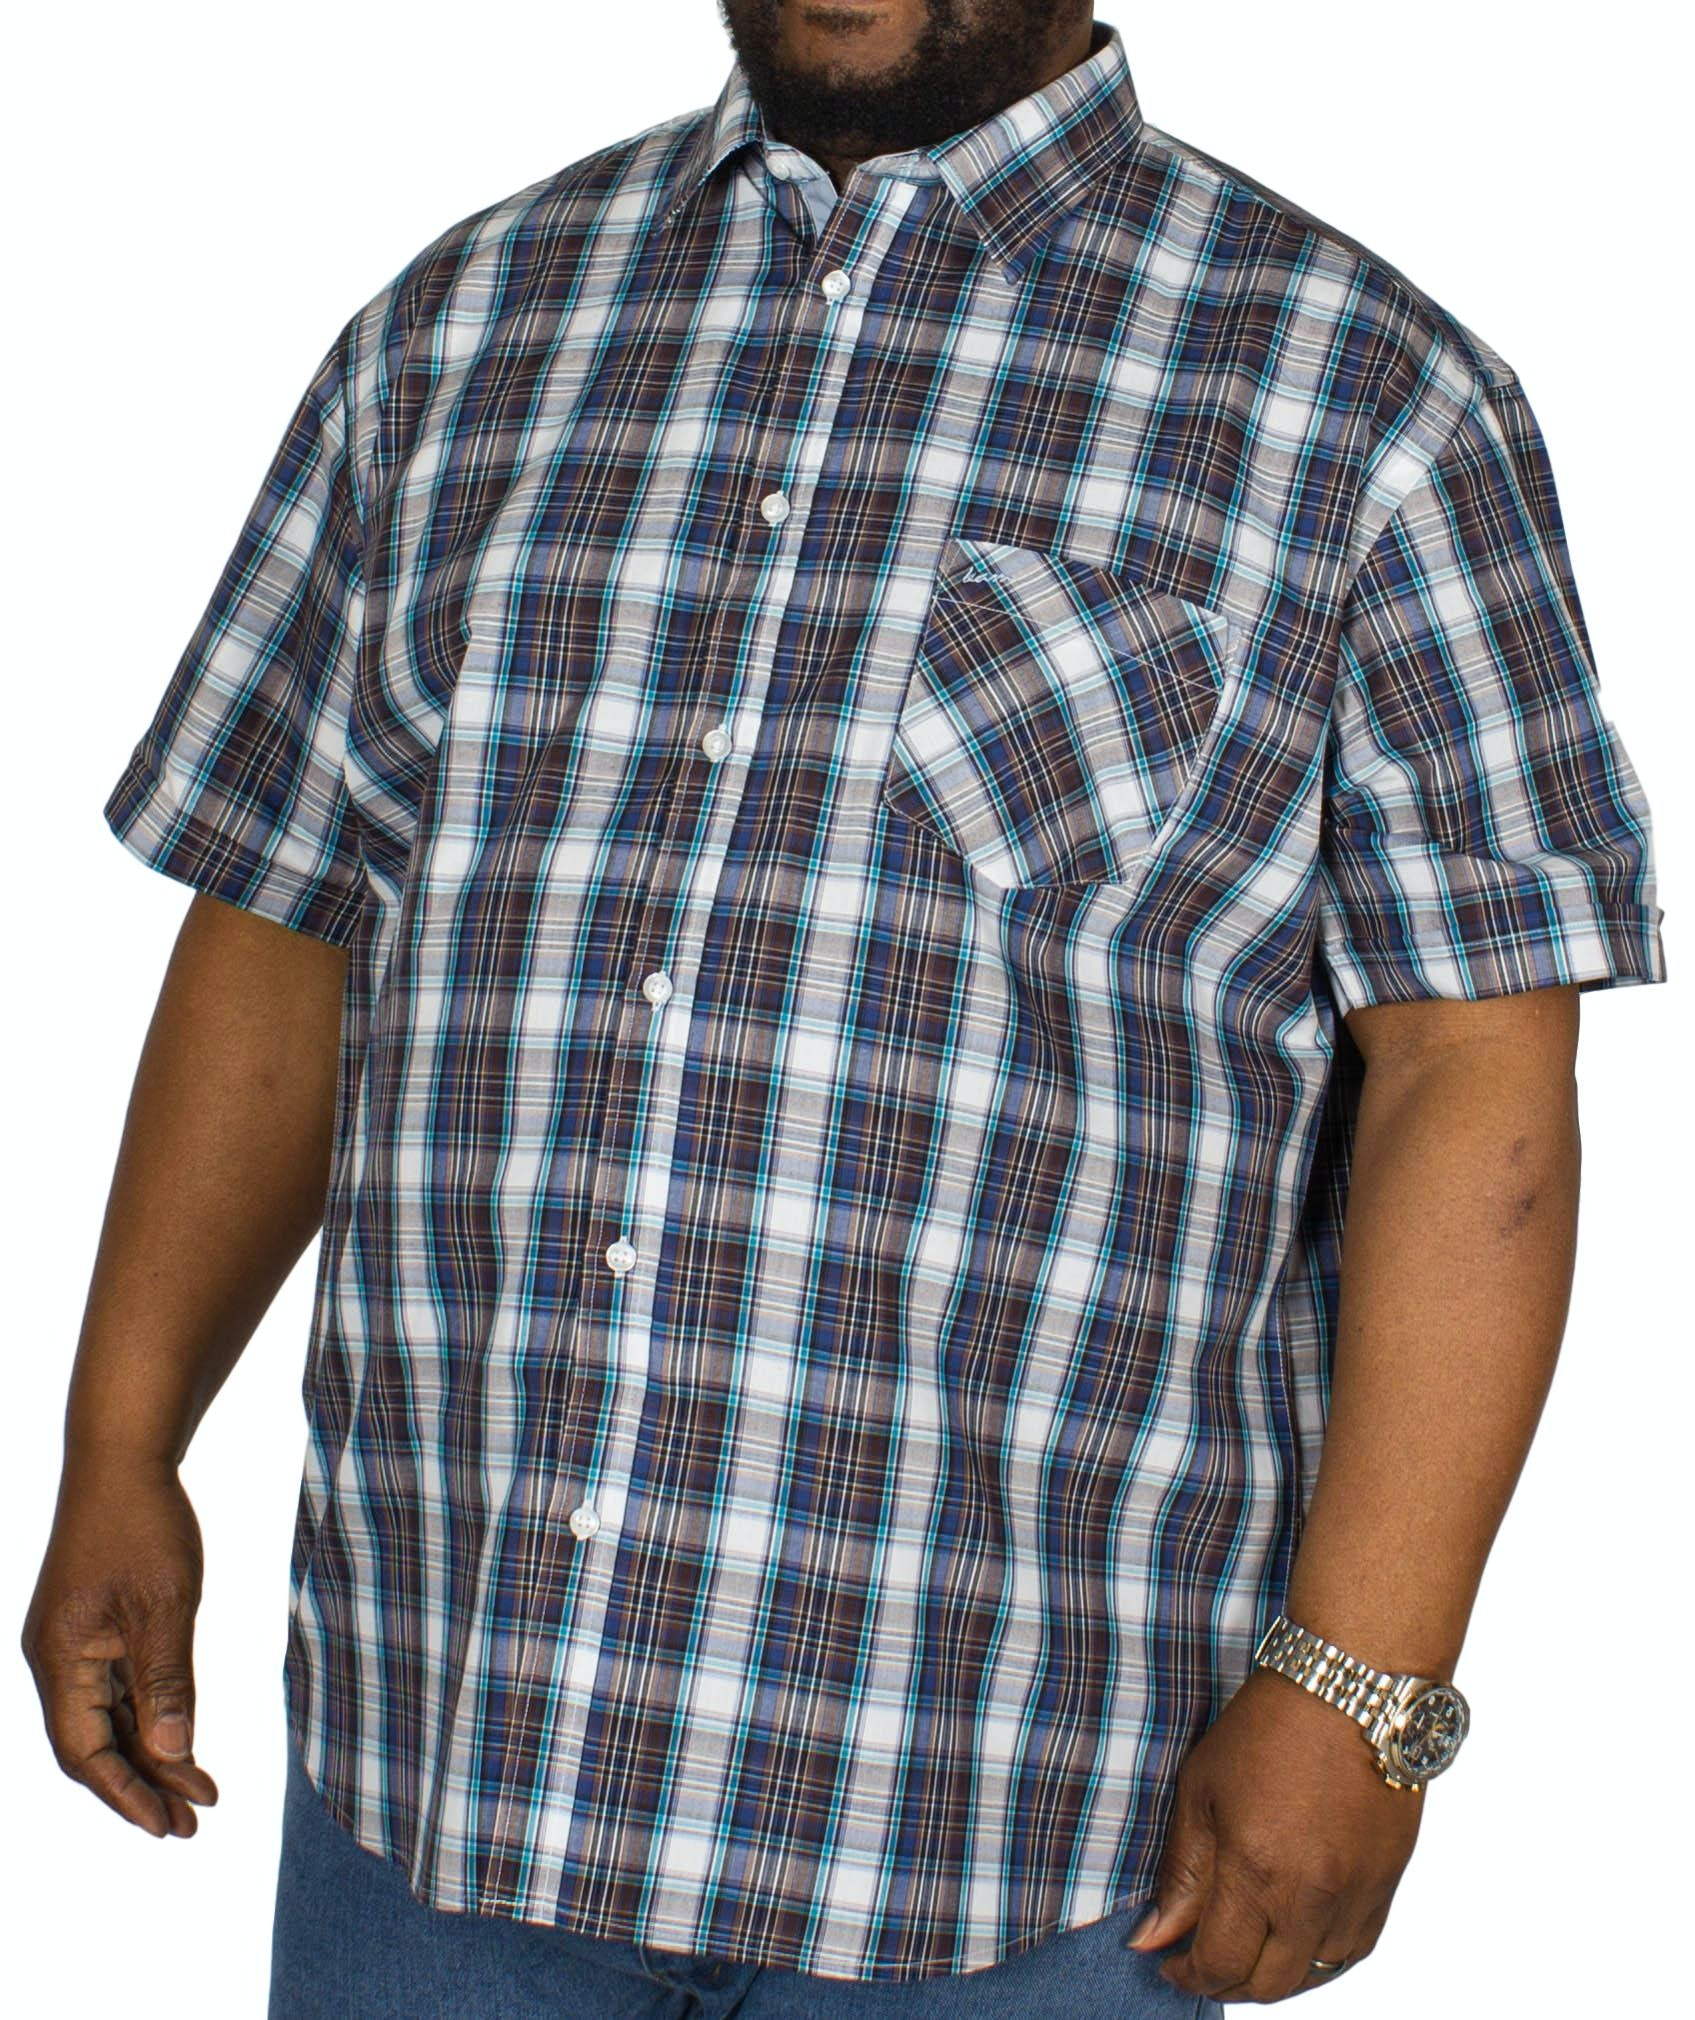 KAM Check Short Sleeved Shirt Blue/Teal